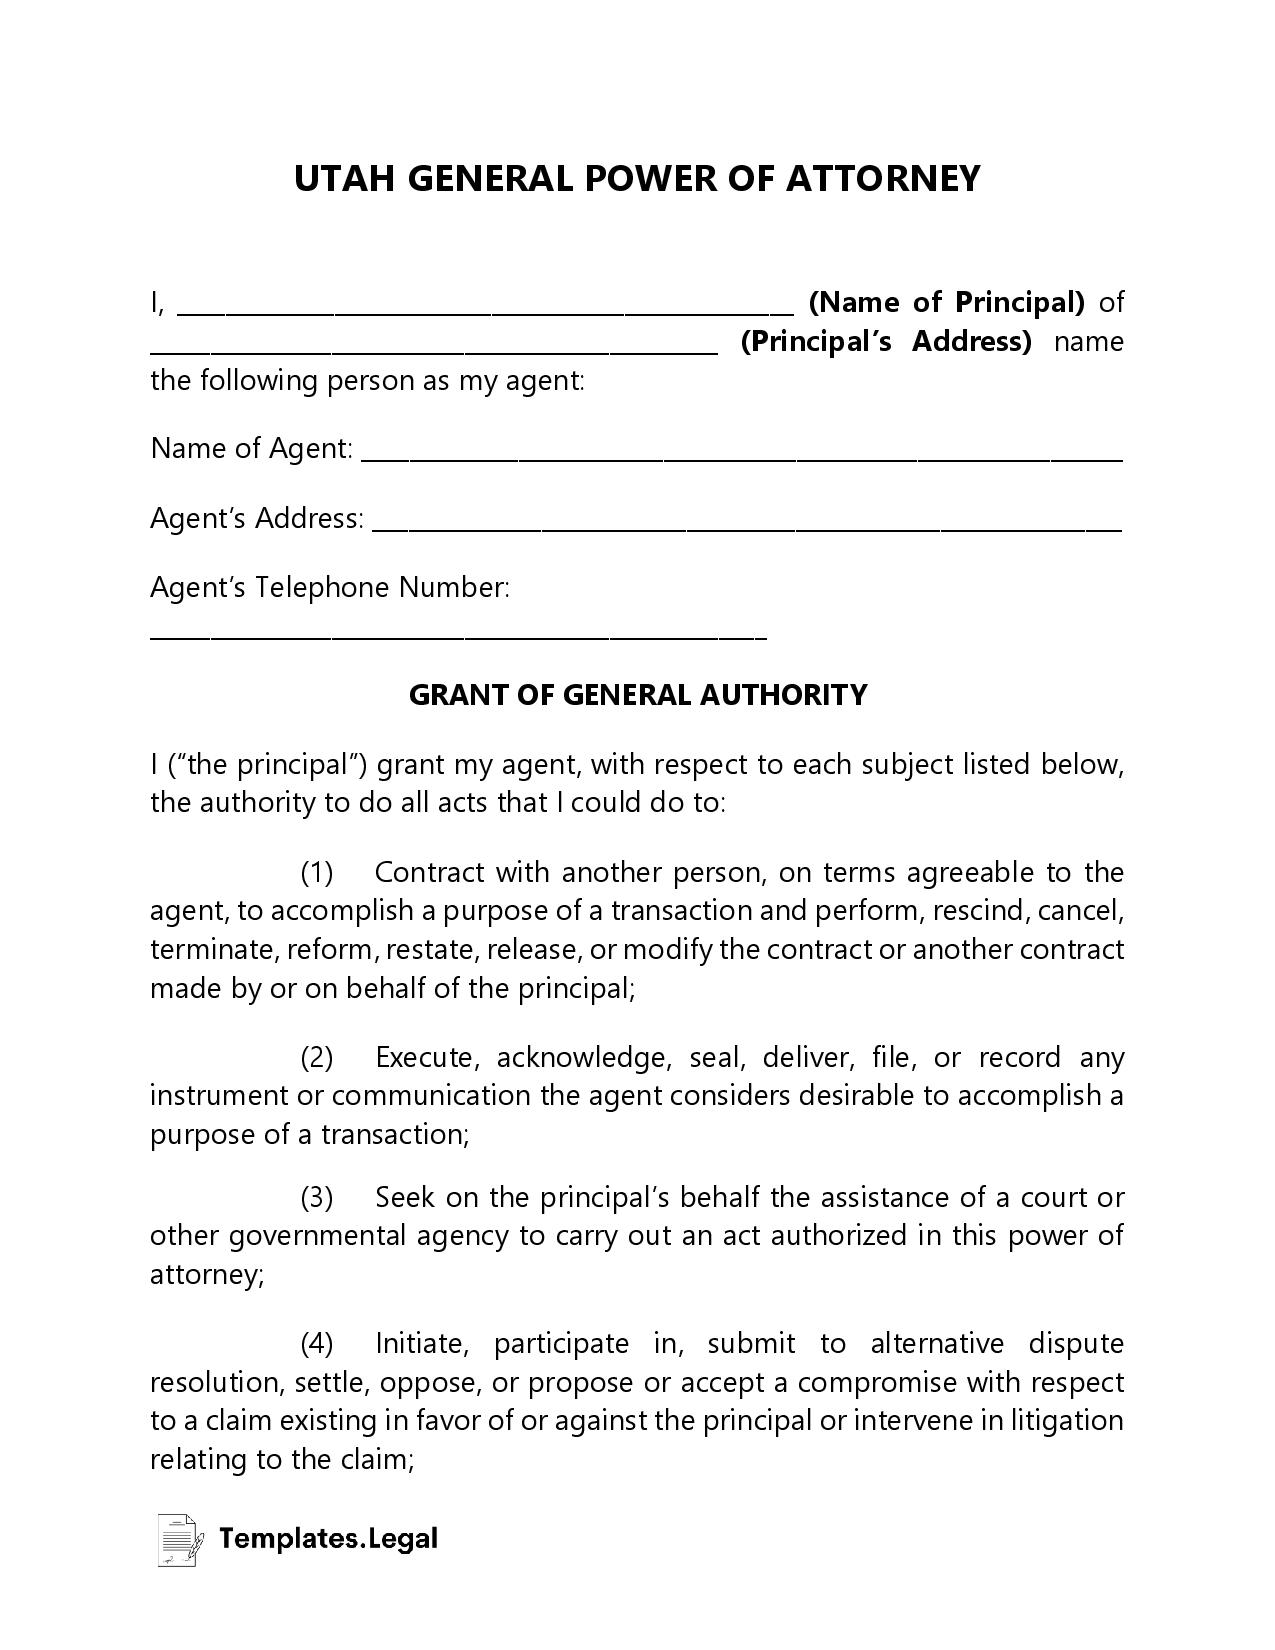 Utah General Power of Attorney - Templates.Legal